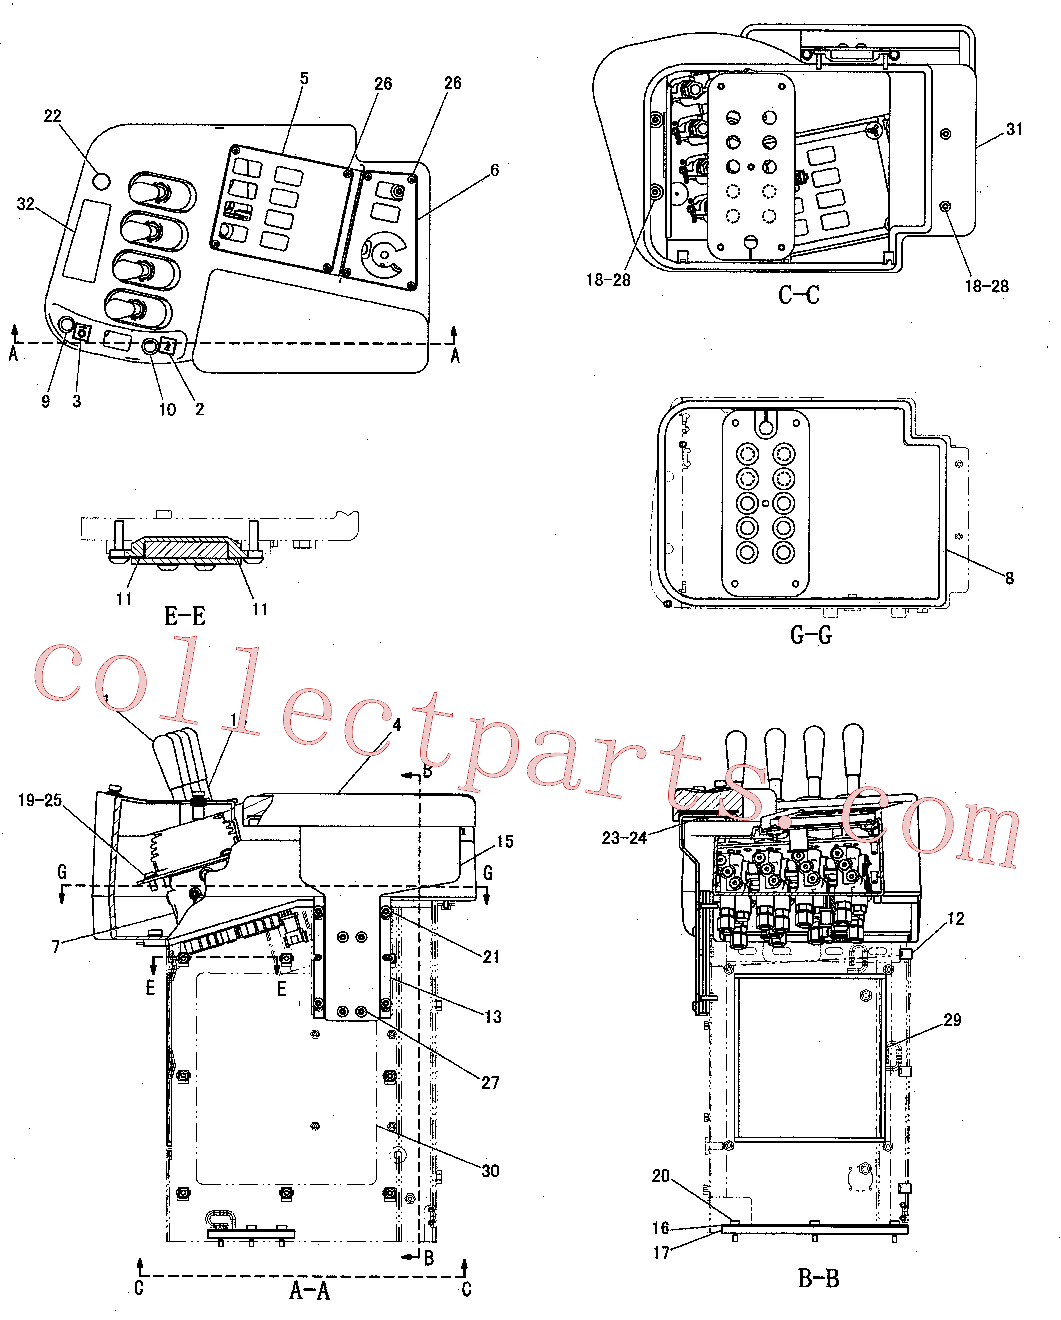 CAT 117-8929 for 375-A L Excavator(EXC) operator station 257-5663 Assembly